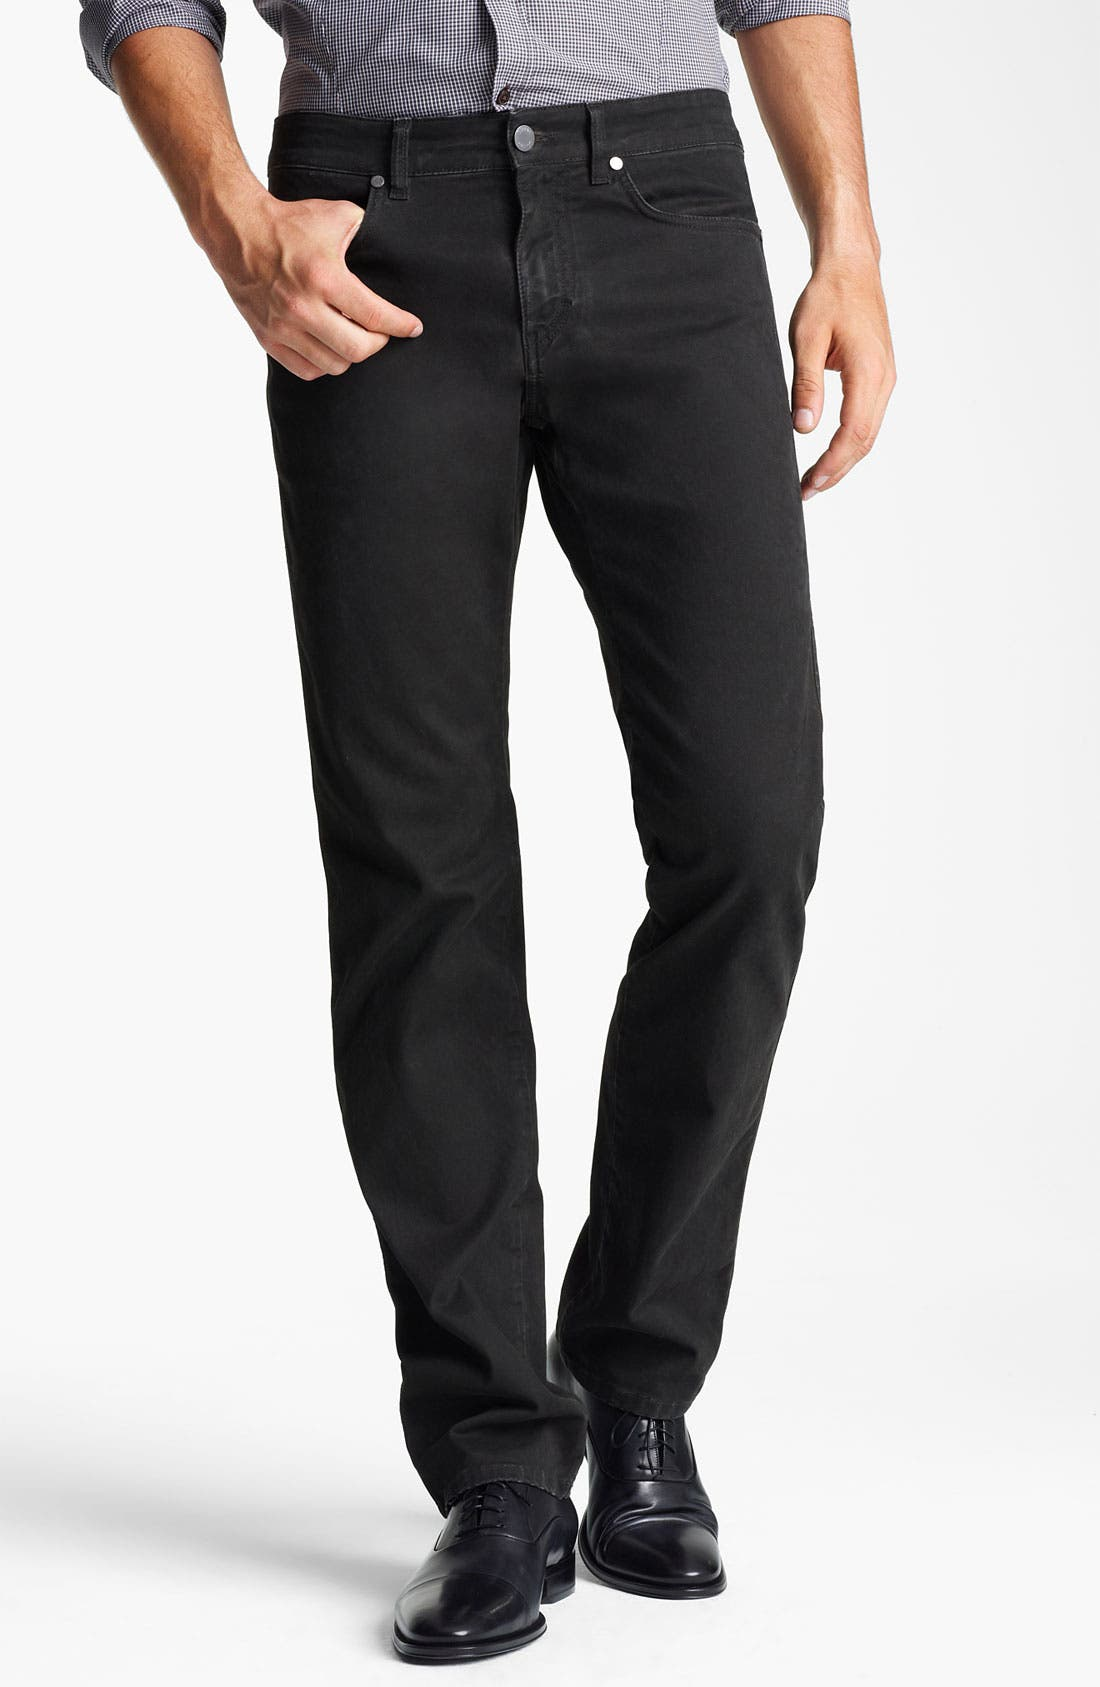 Alternate Image 1 Selected - Z Zegna Straight Leg Jeans (Coated Black)